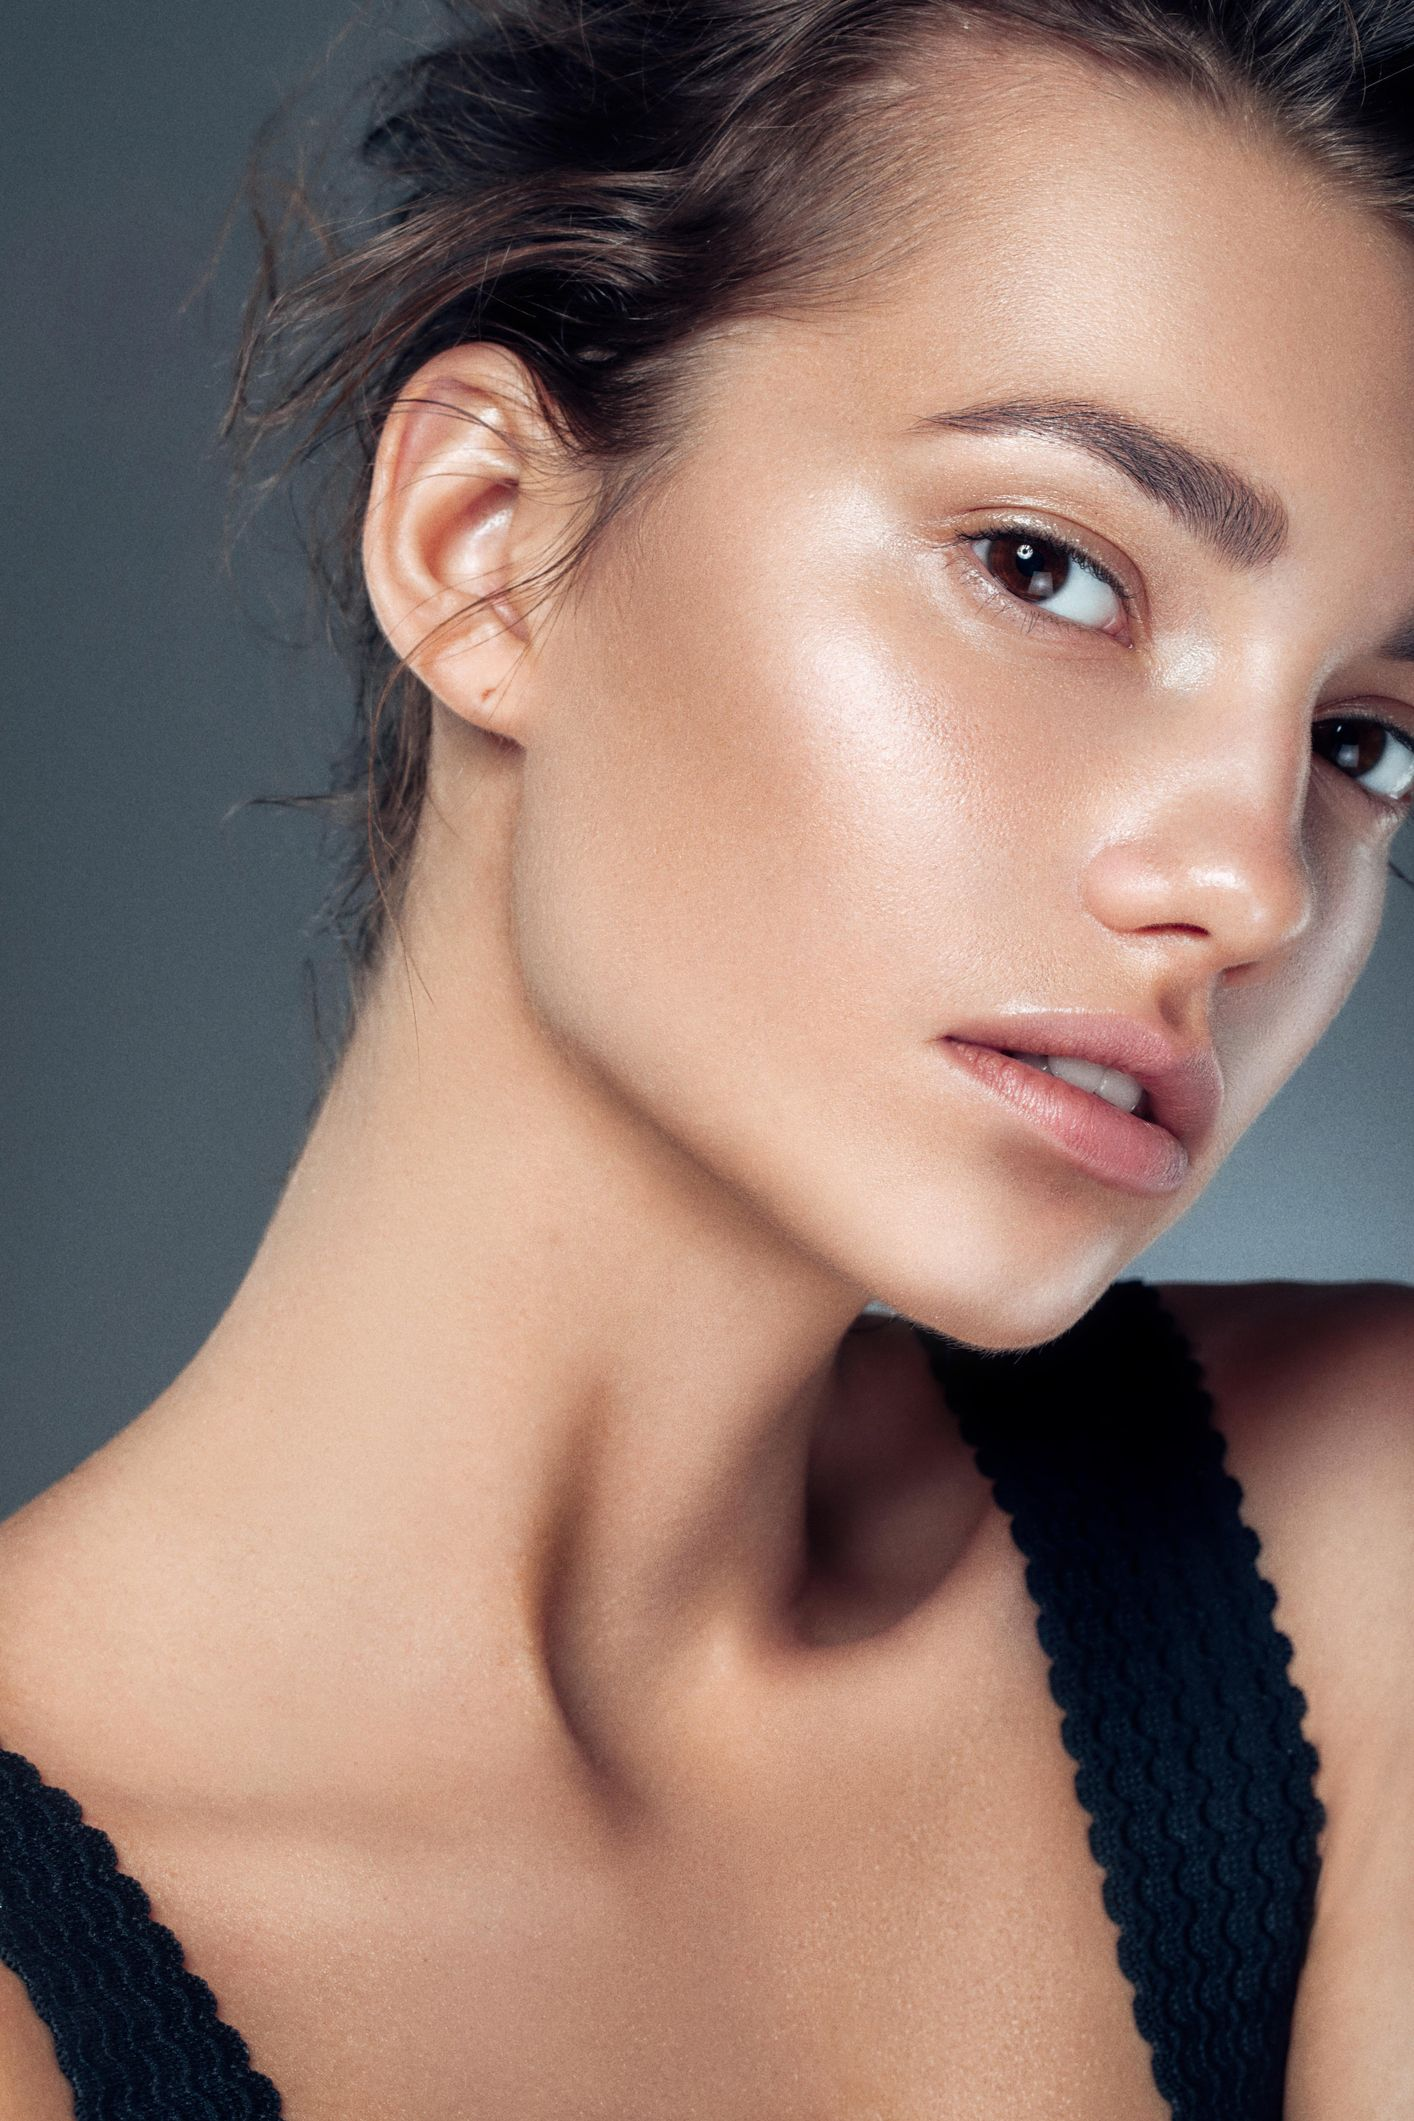 Cover Up! The 5 Best Foundations for Sensitive Skin in